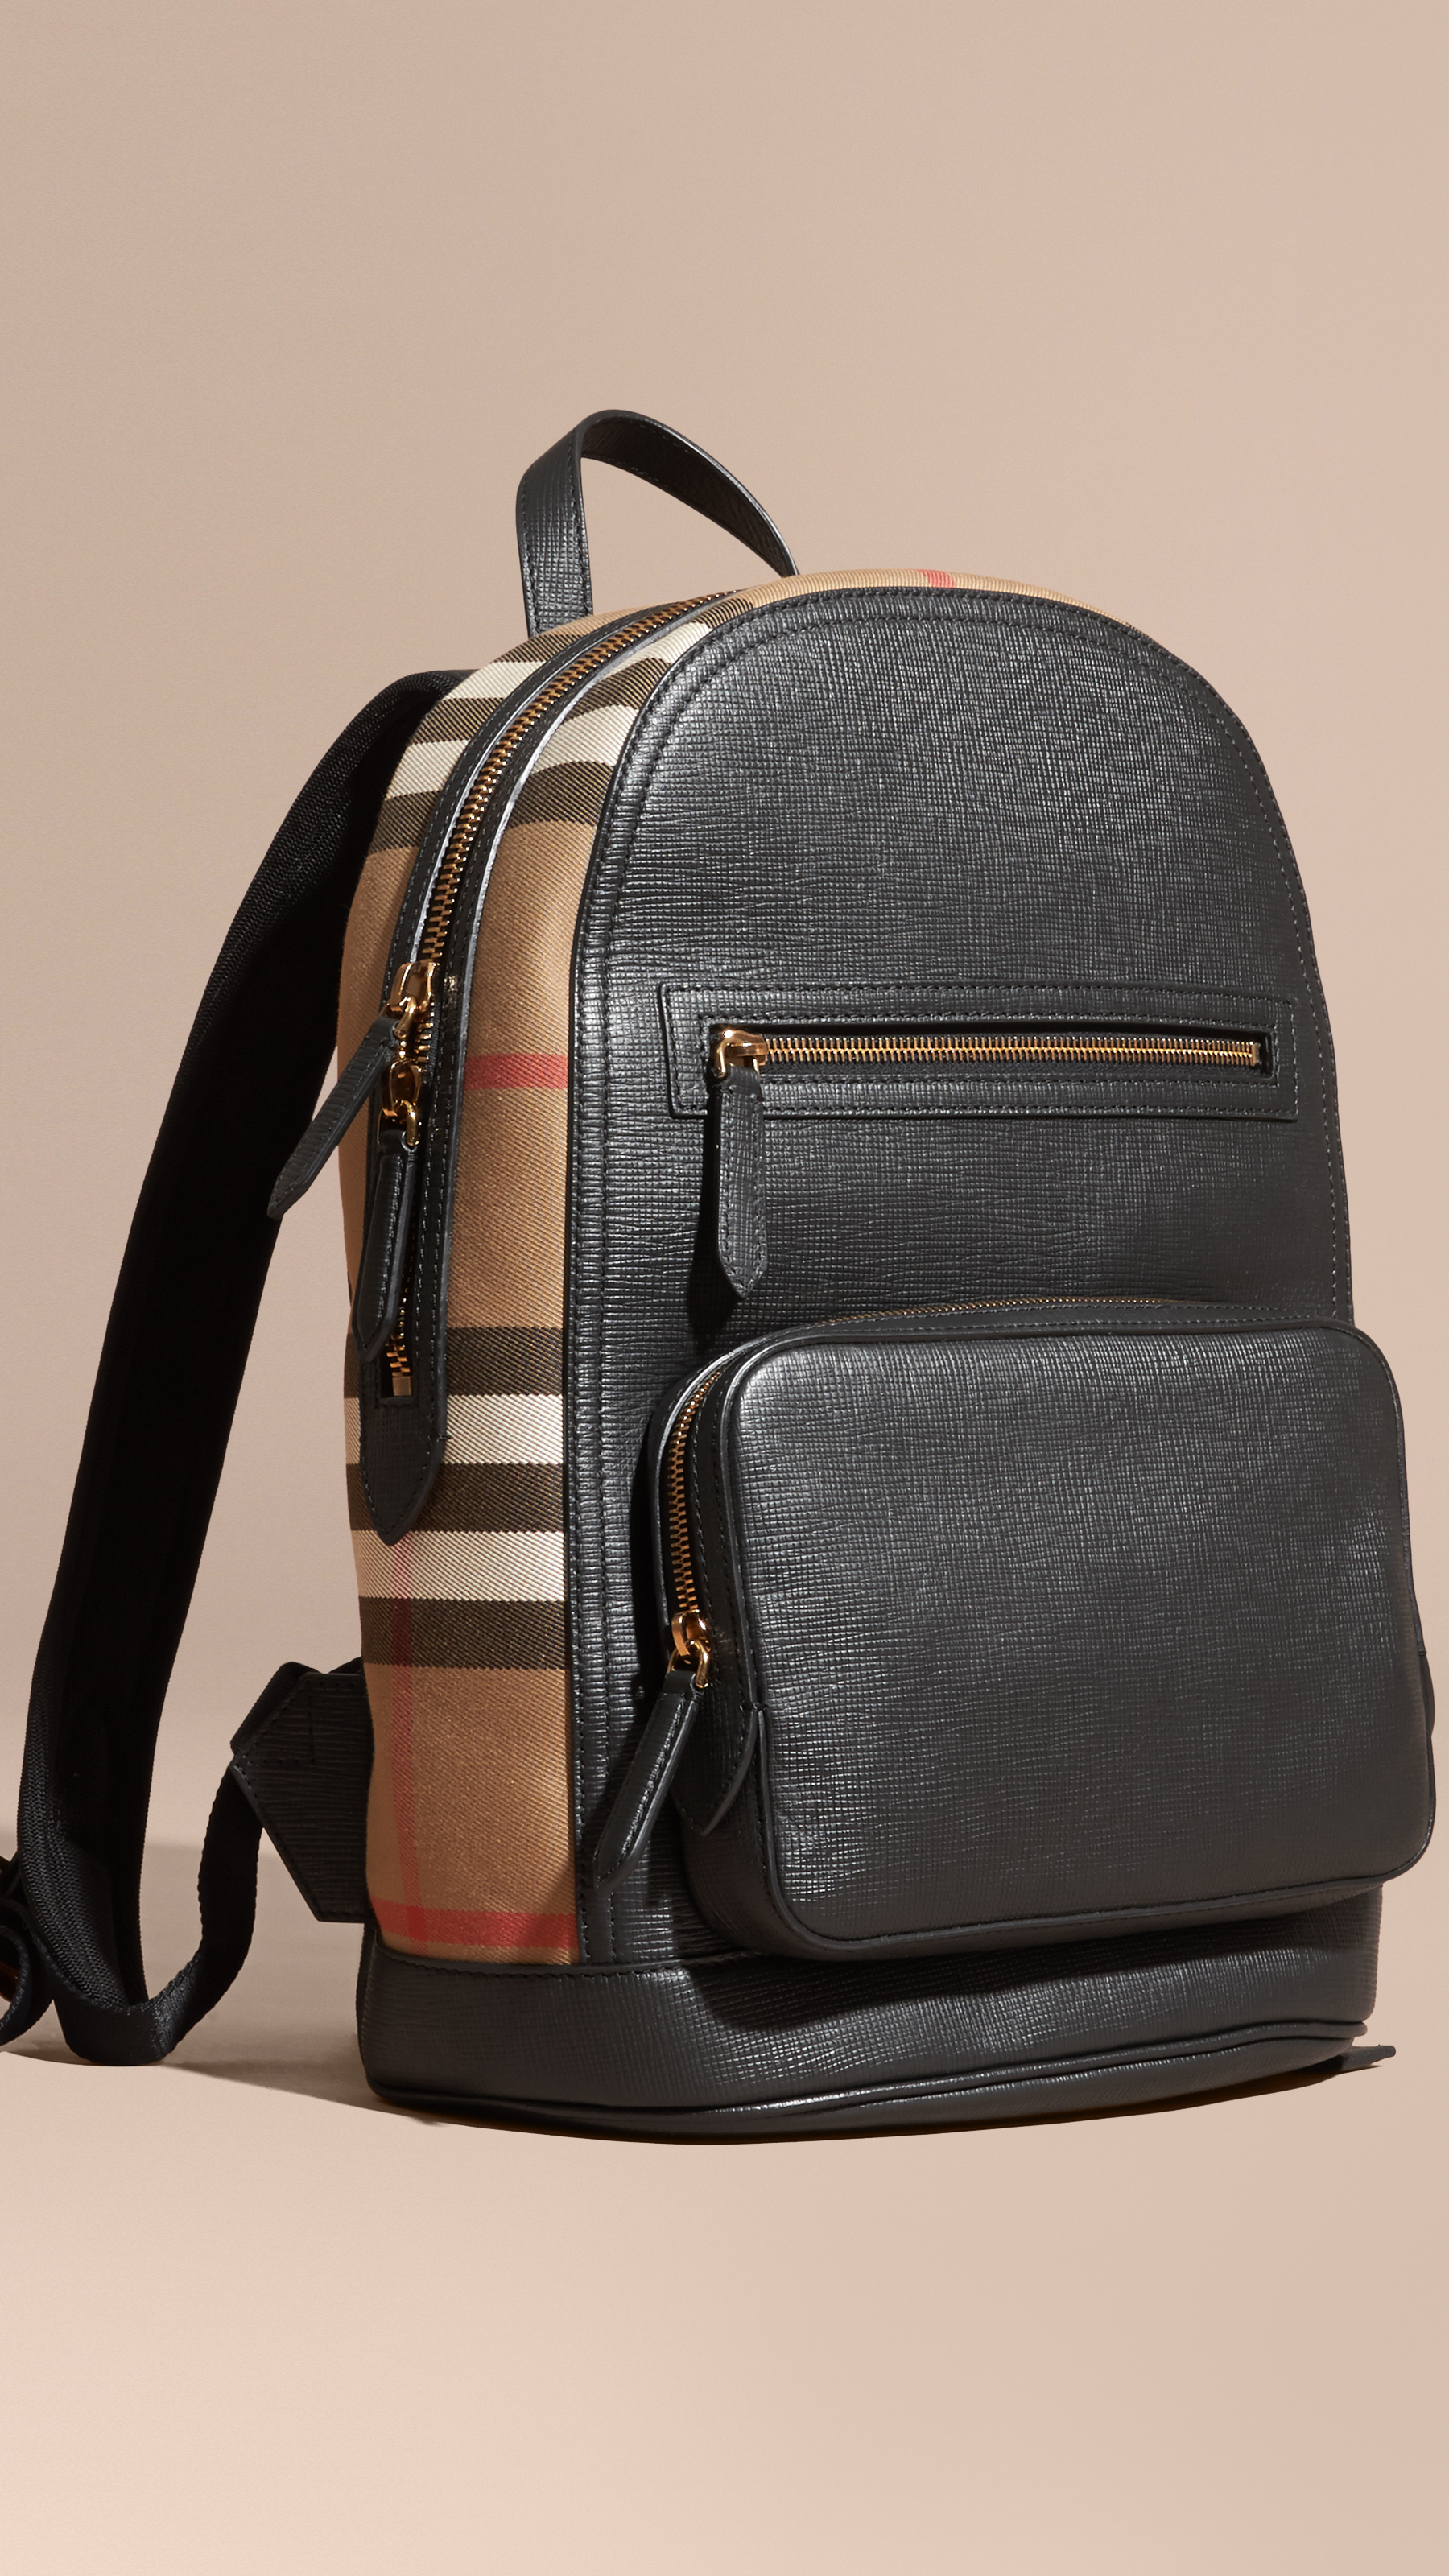 Burberry Multicolor Textured Leather And House Check